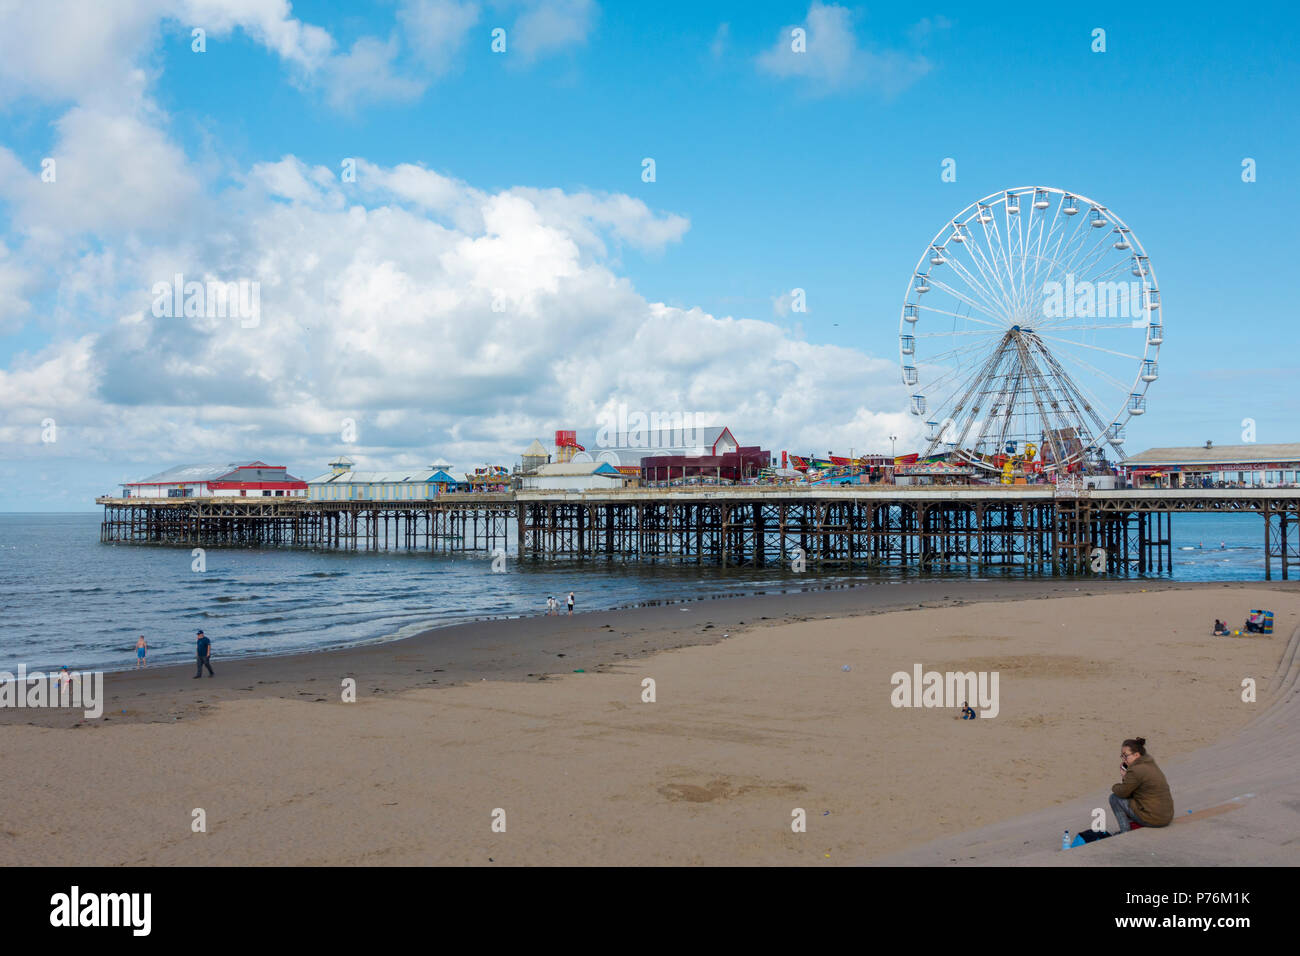 Central Pier in Blackpool, Lancashire. - Stock Image